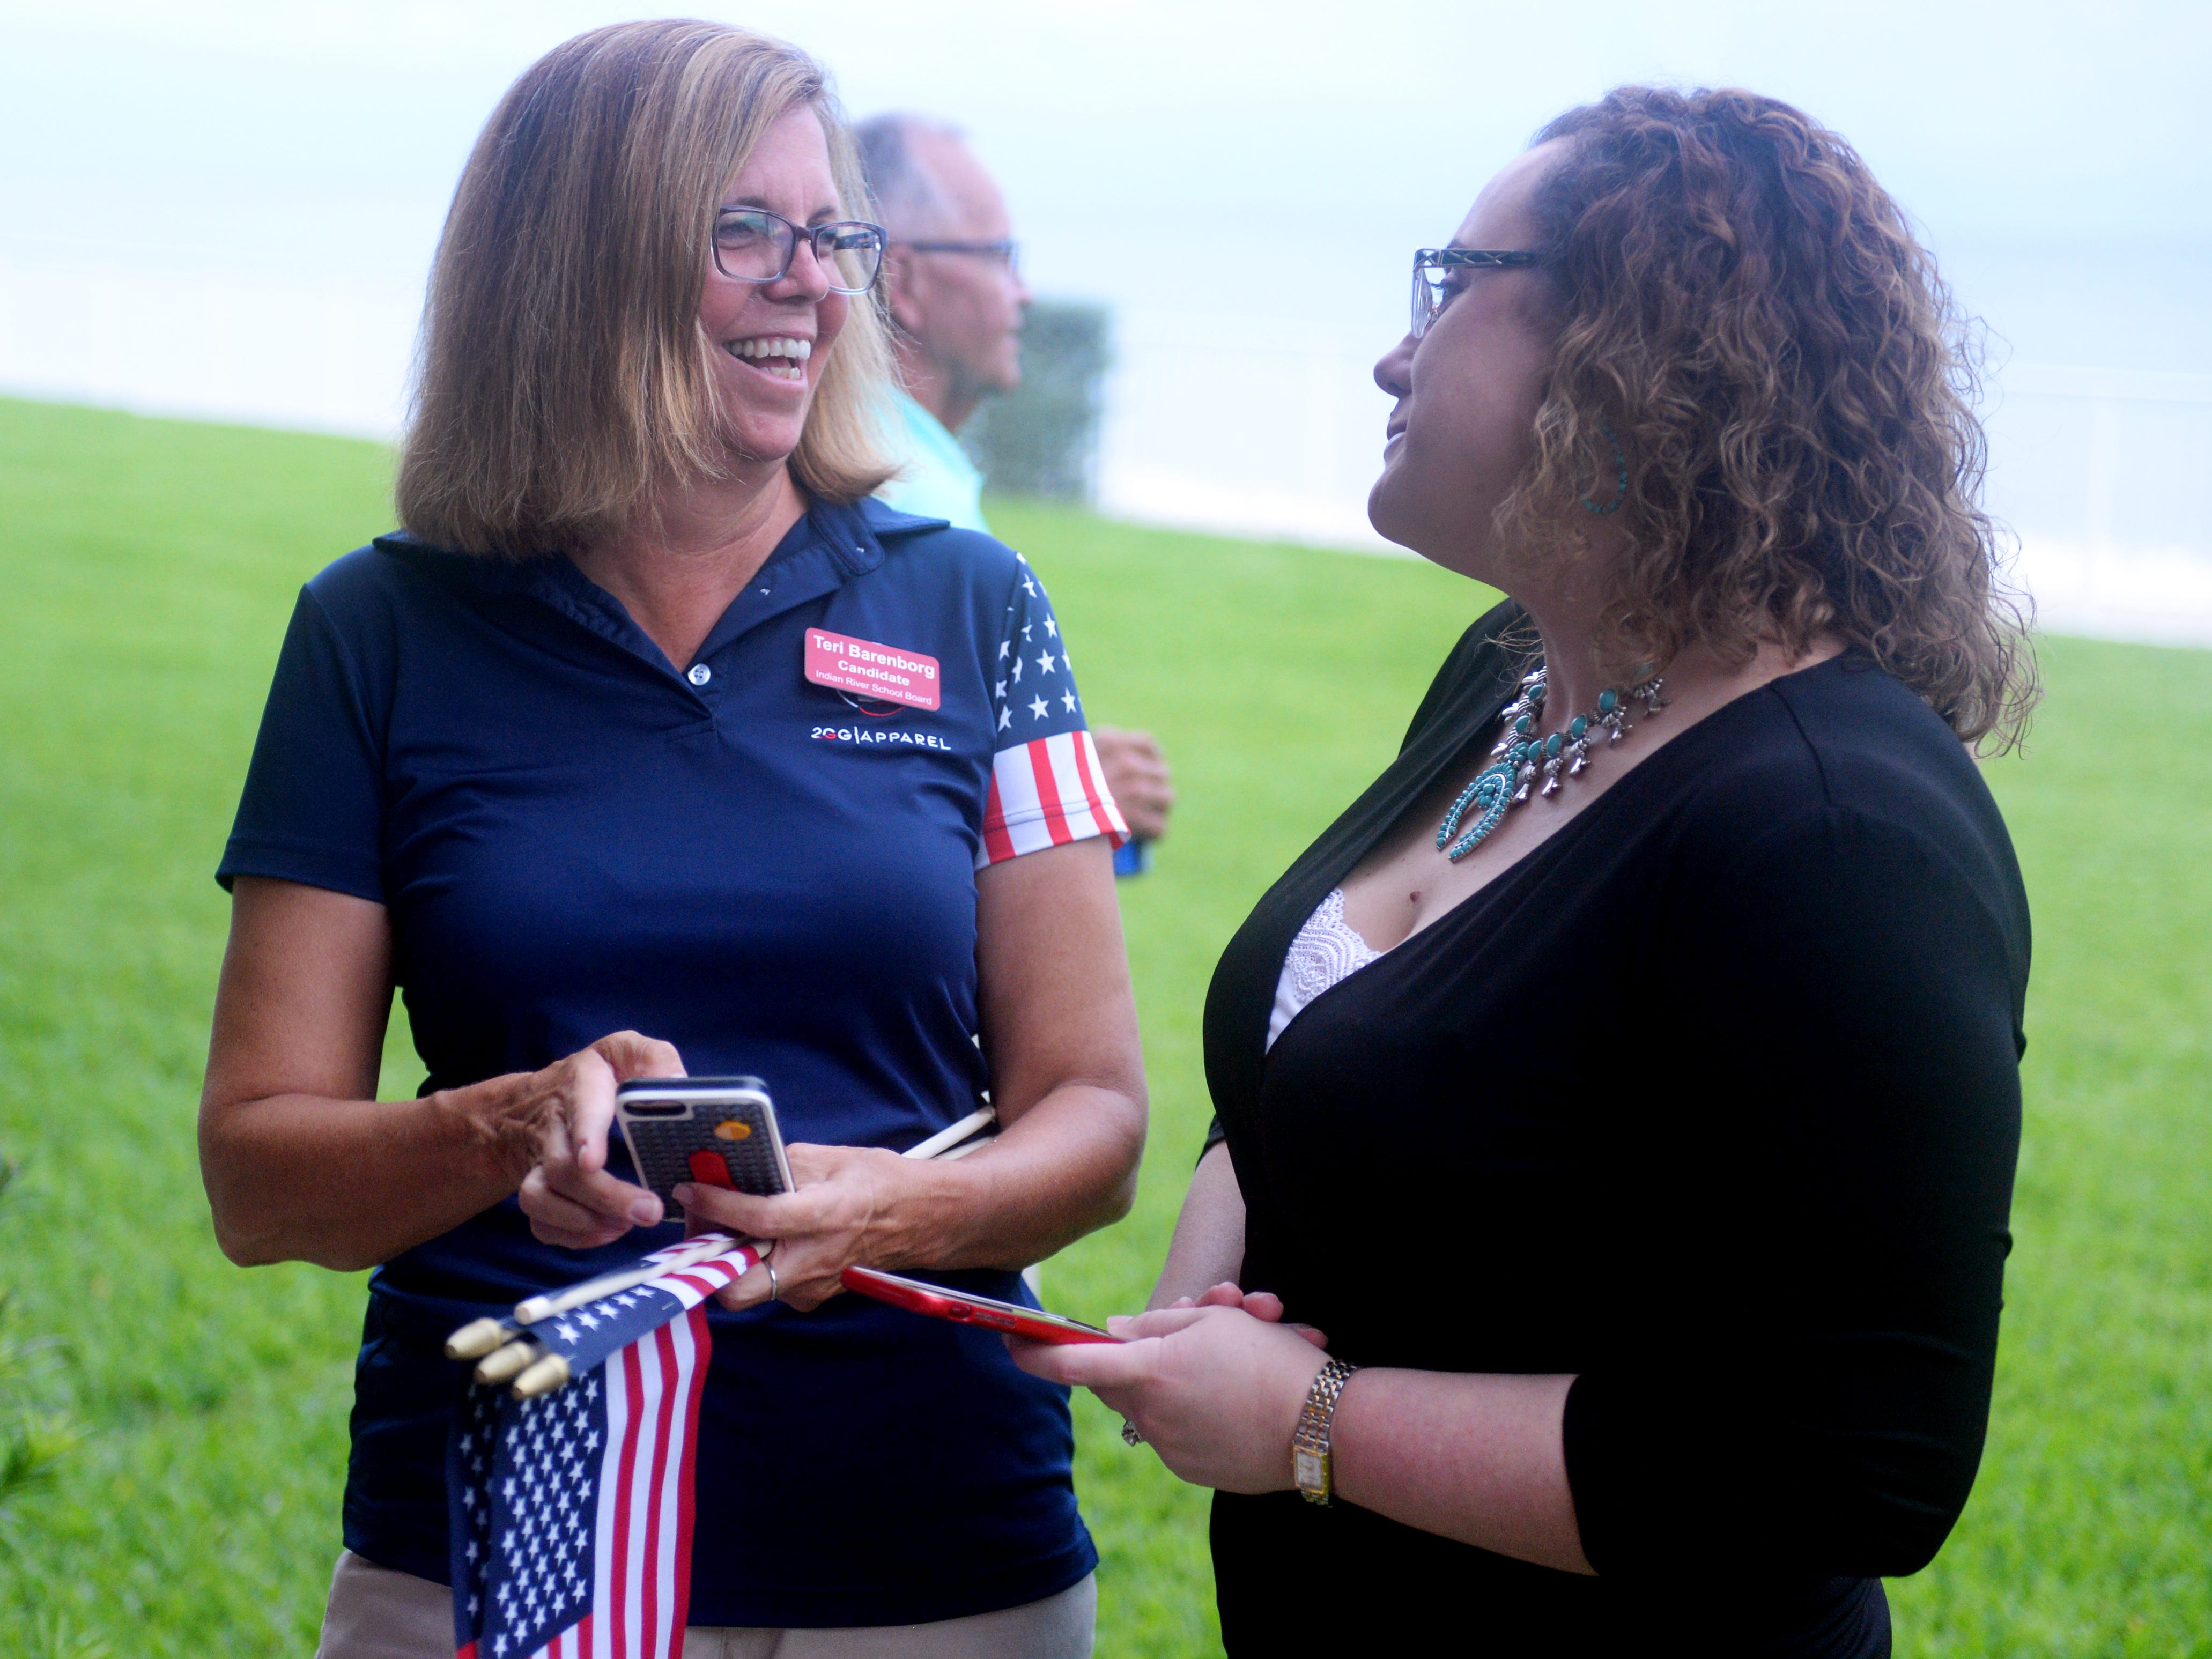 Indian River County School Board District 4 candidate Teri Barenborg (left) talks with State Rep. Erin Grall on Tuesday, Aug. 28, 2018 during an election watch party at the Holiday Inn and Suites in Vero Beach. Barenborg will go against Stacey Klim in a runoff election in November.